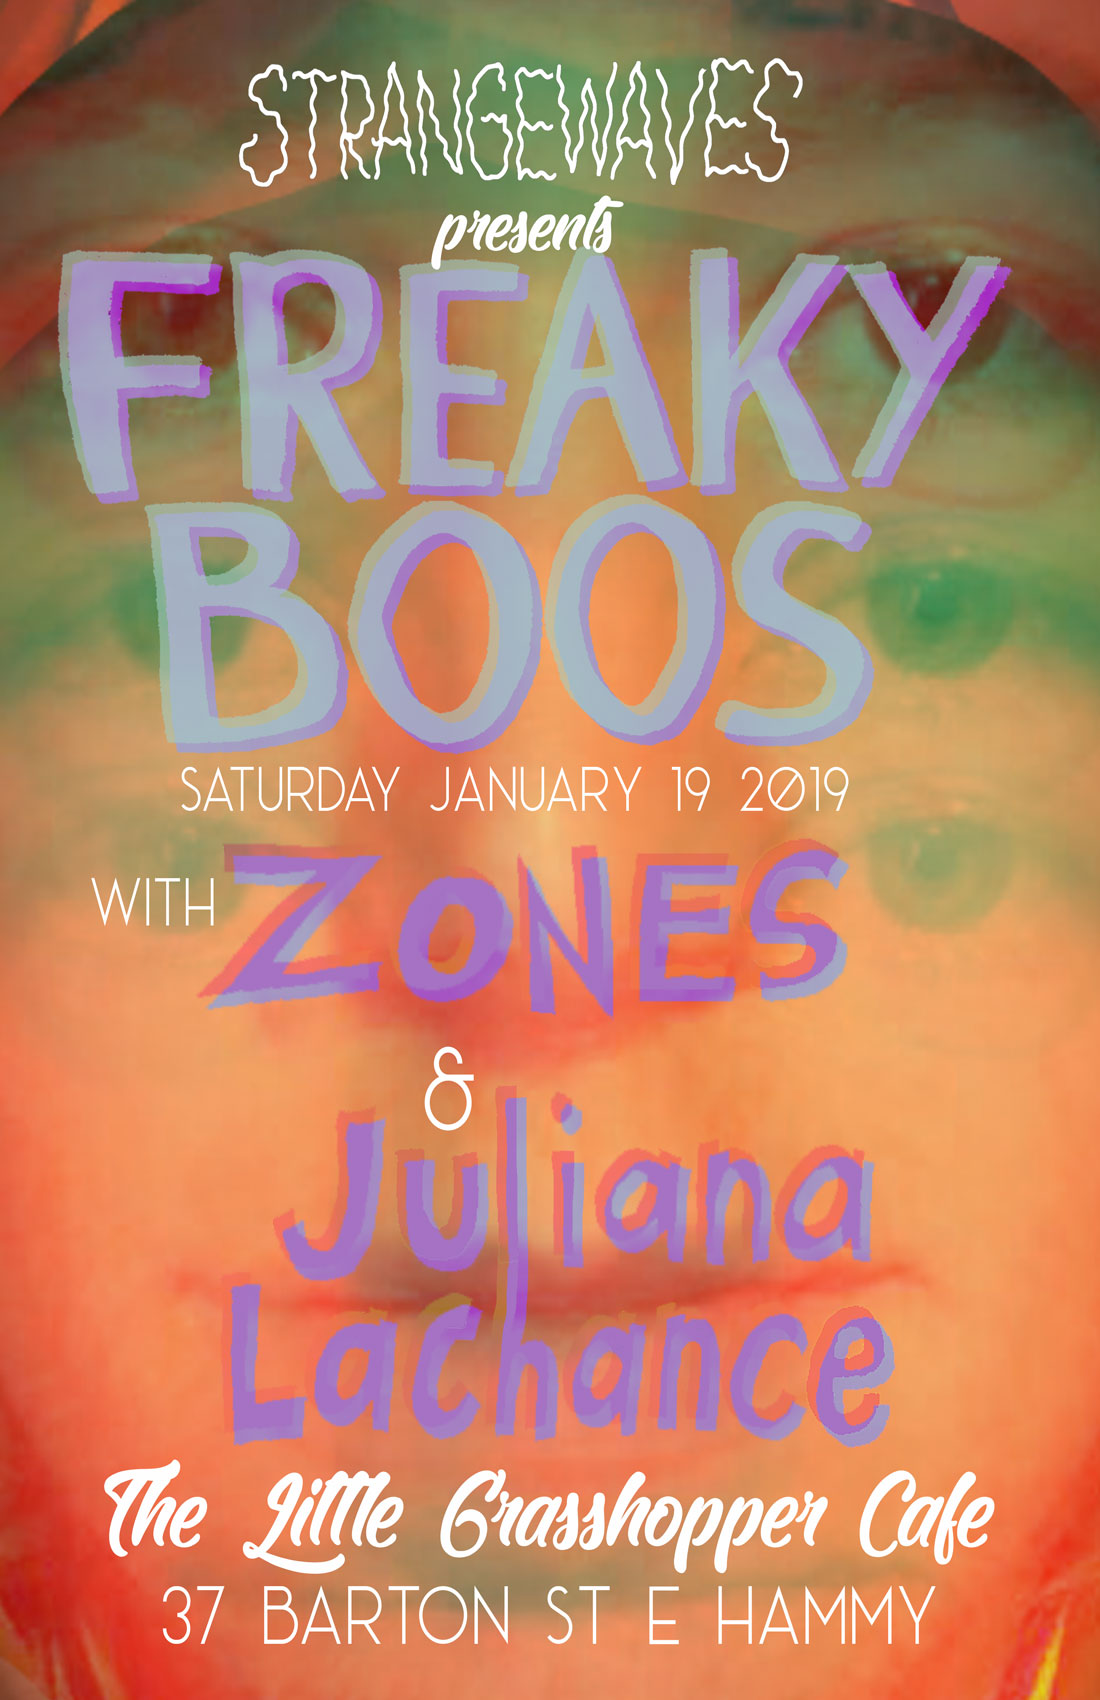 FREAKY BOOS/ZONES/JULIANA LACHANCE  @The Little Grasshopper Cafe